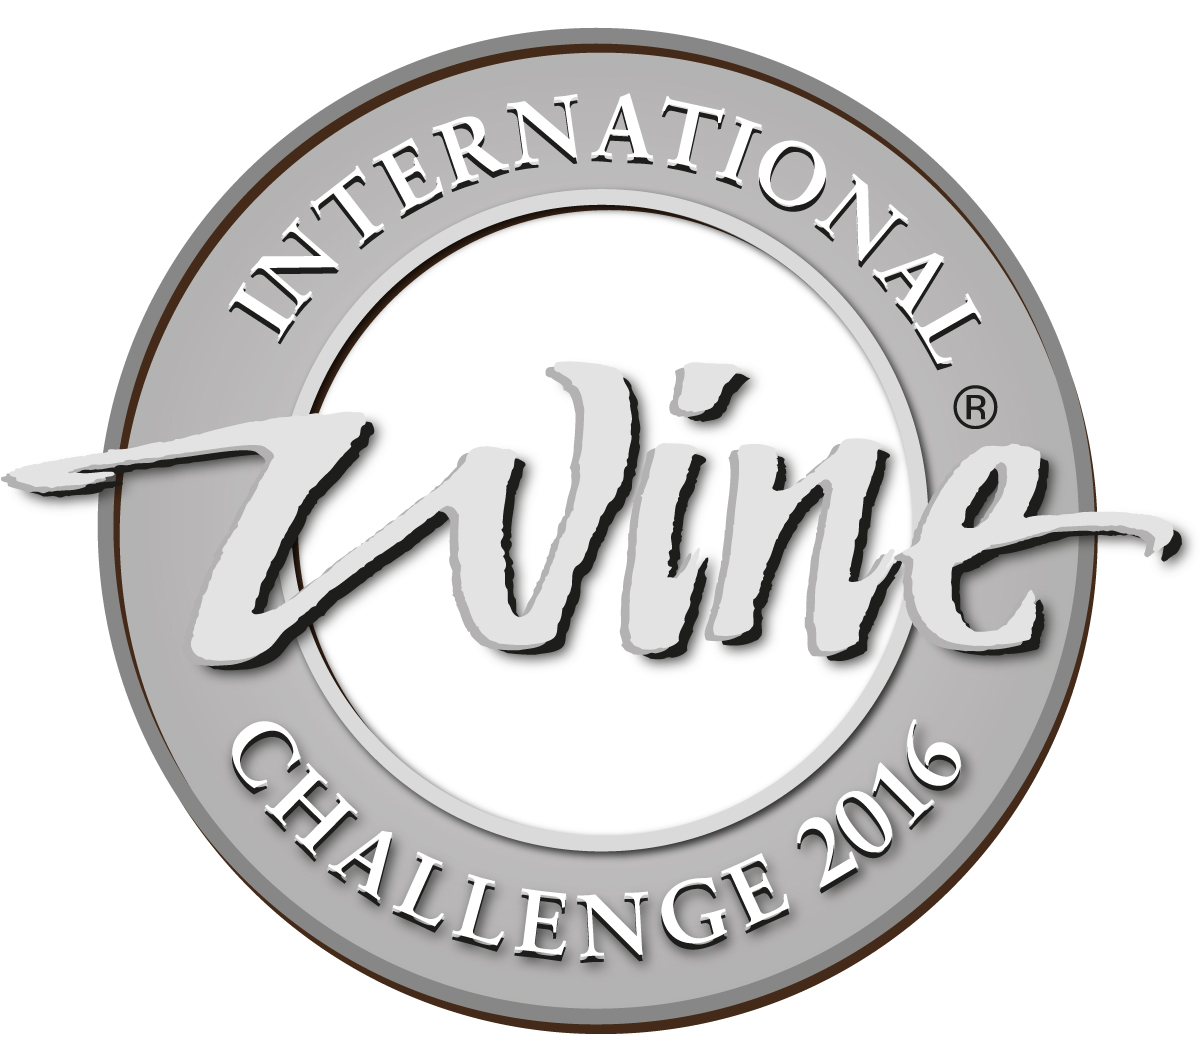 IWC wine competition